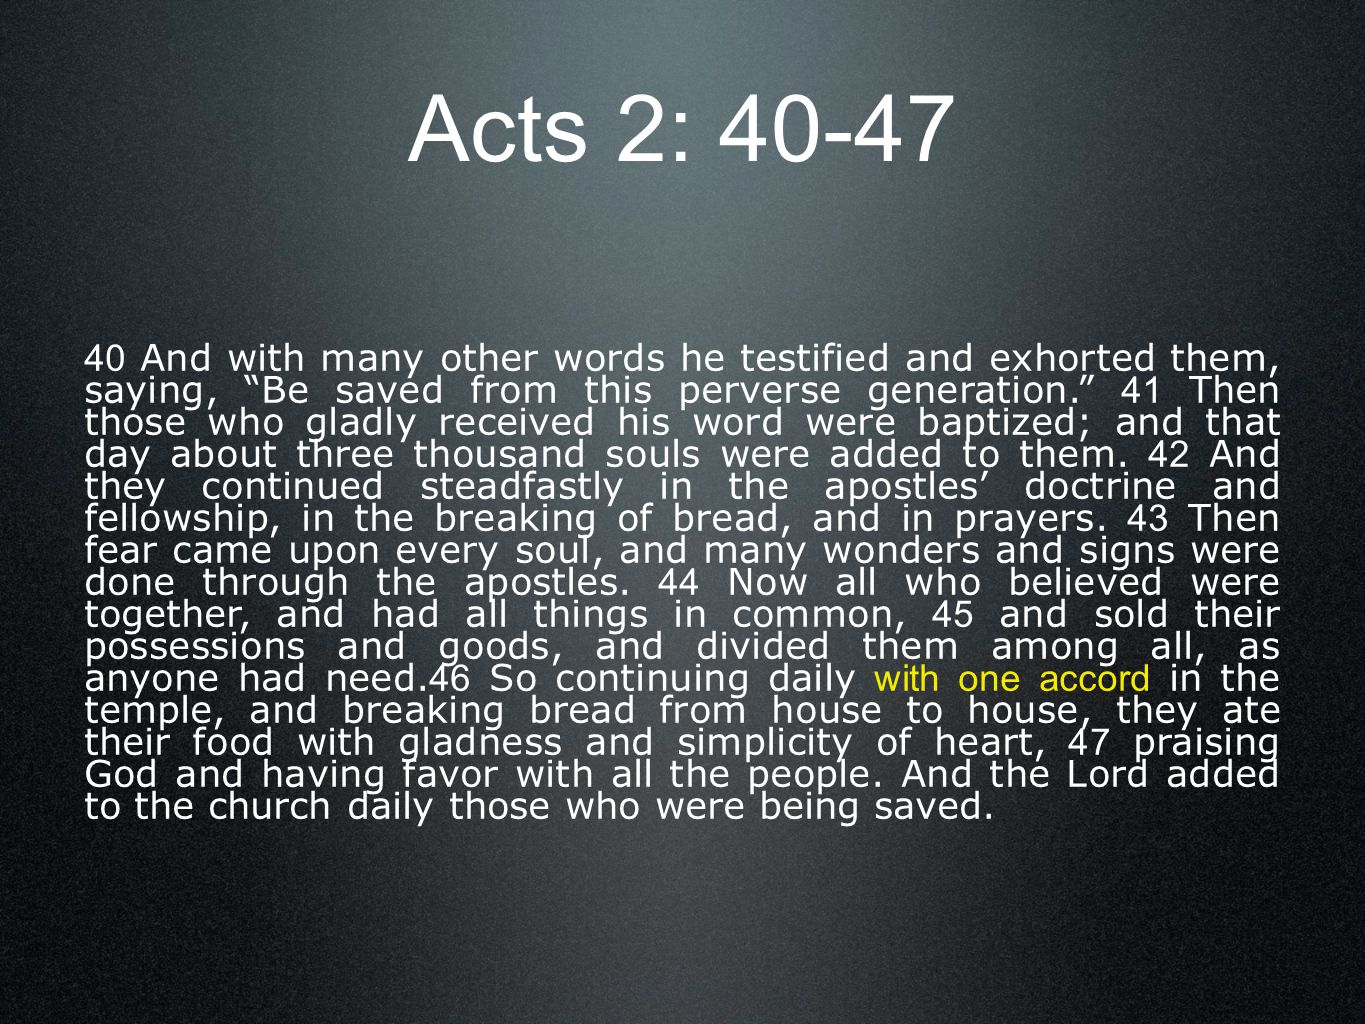 Acts 2: 40-47